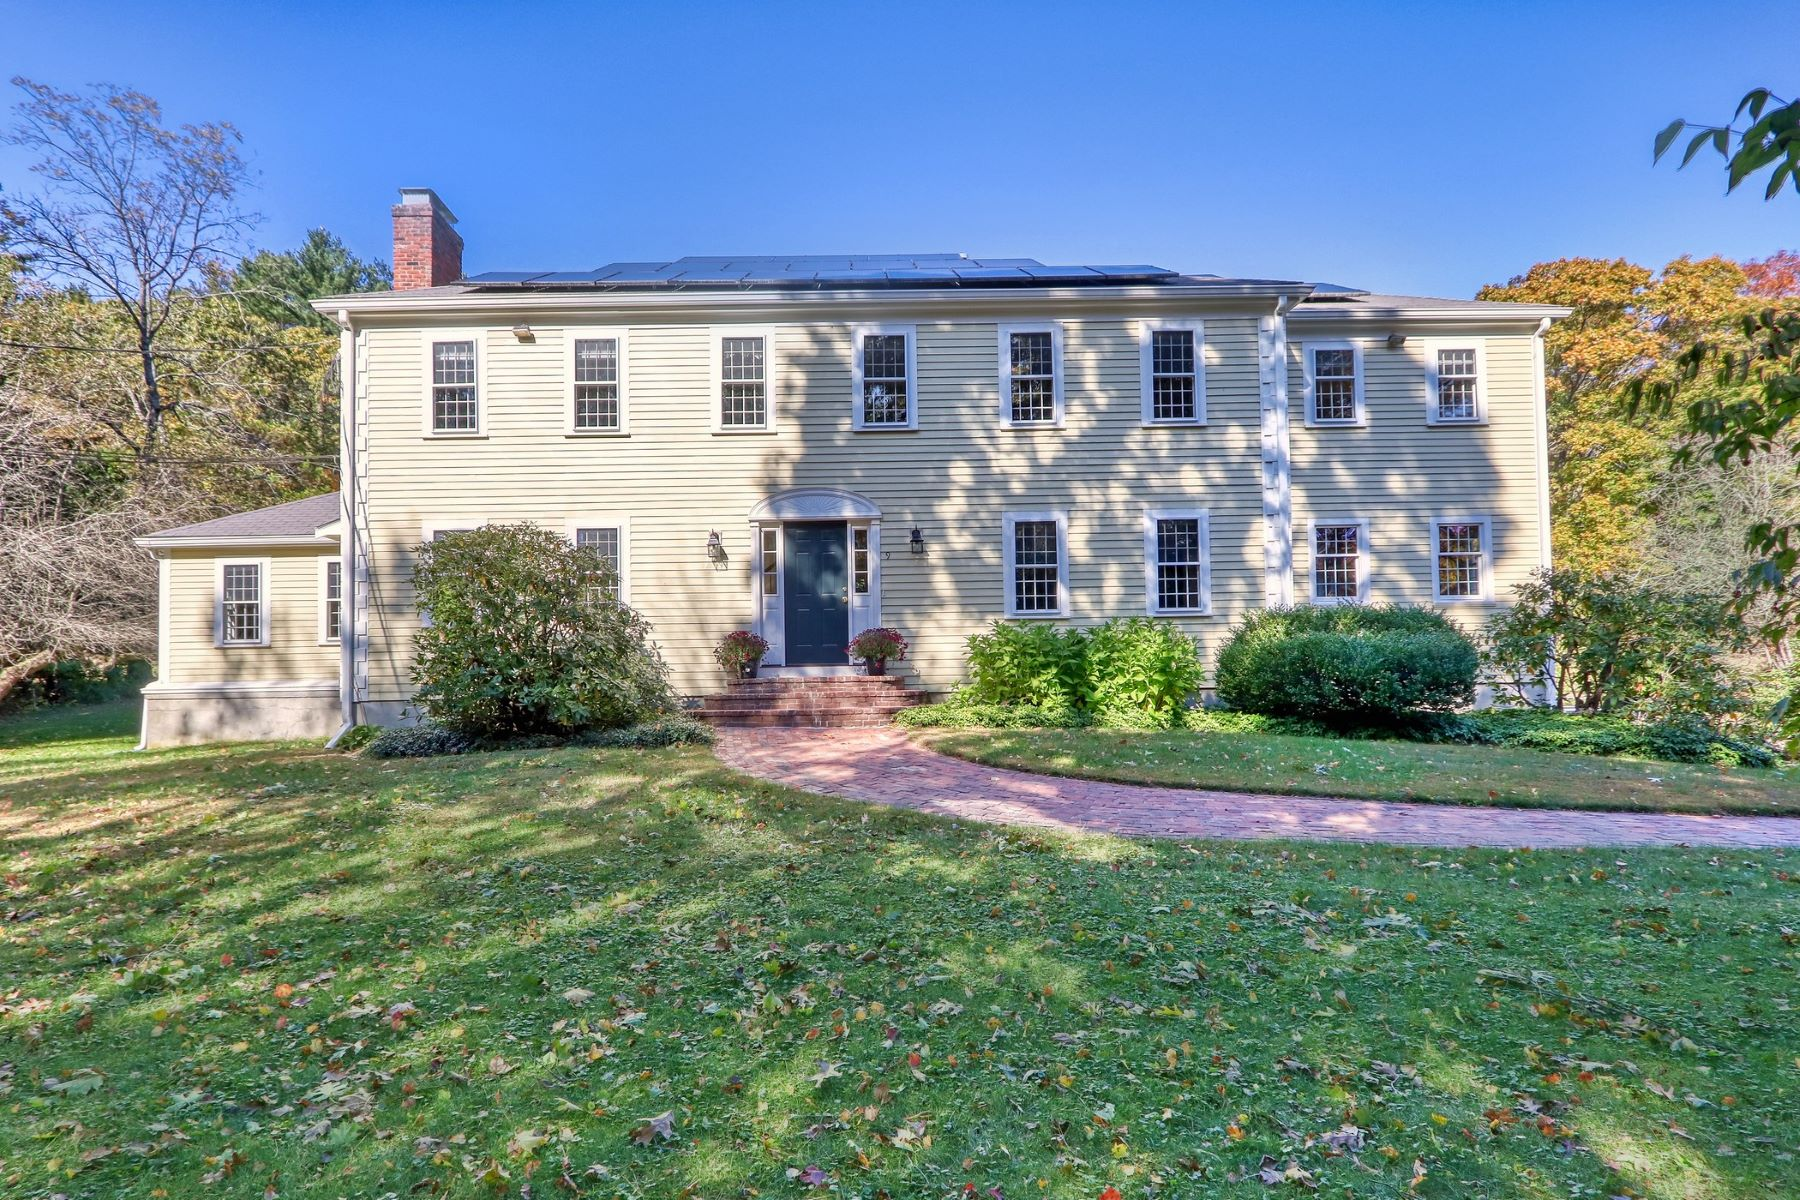 Single Family Homes for Sale at 9 Old Sudbury Road Lincoln, Massachusetts 01773 United States